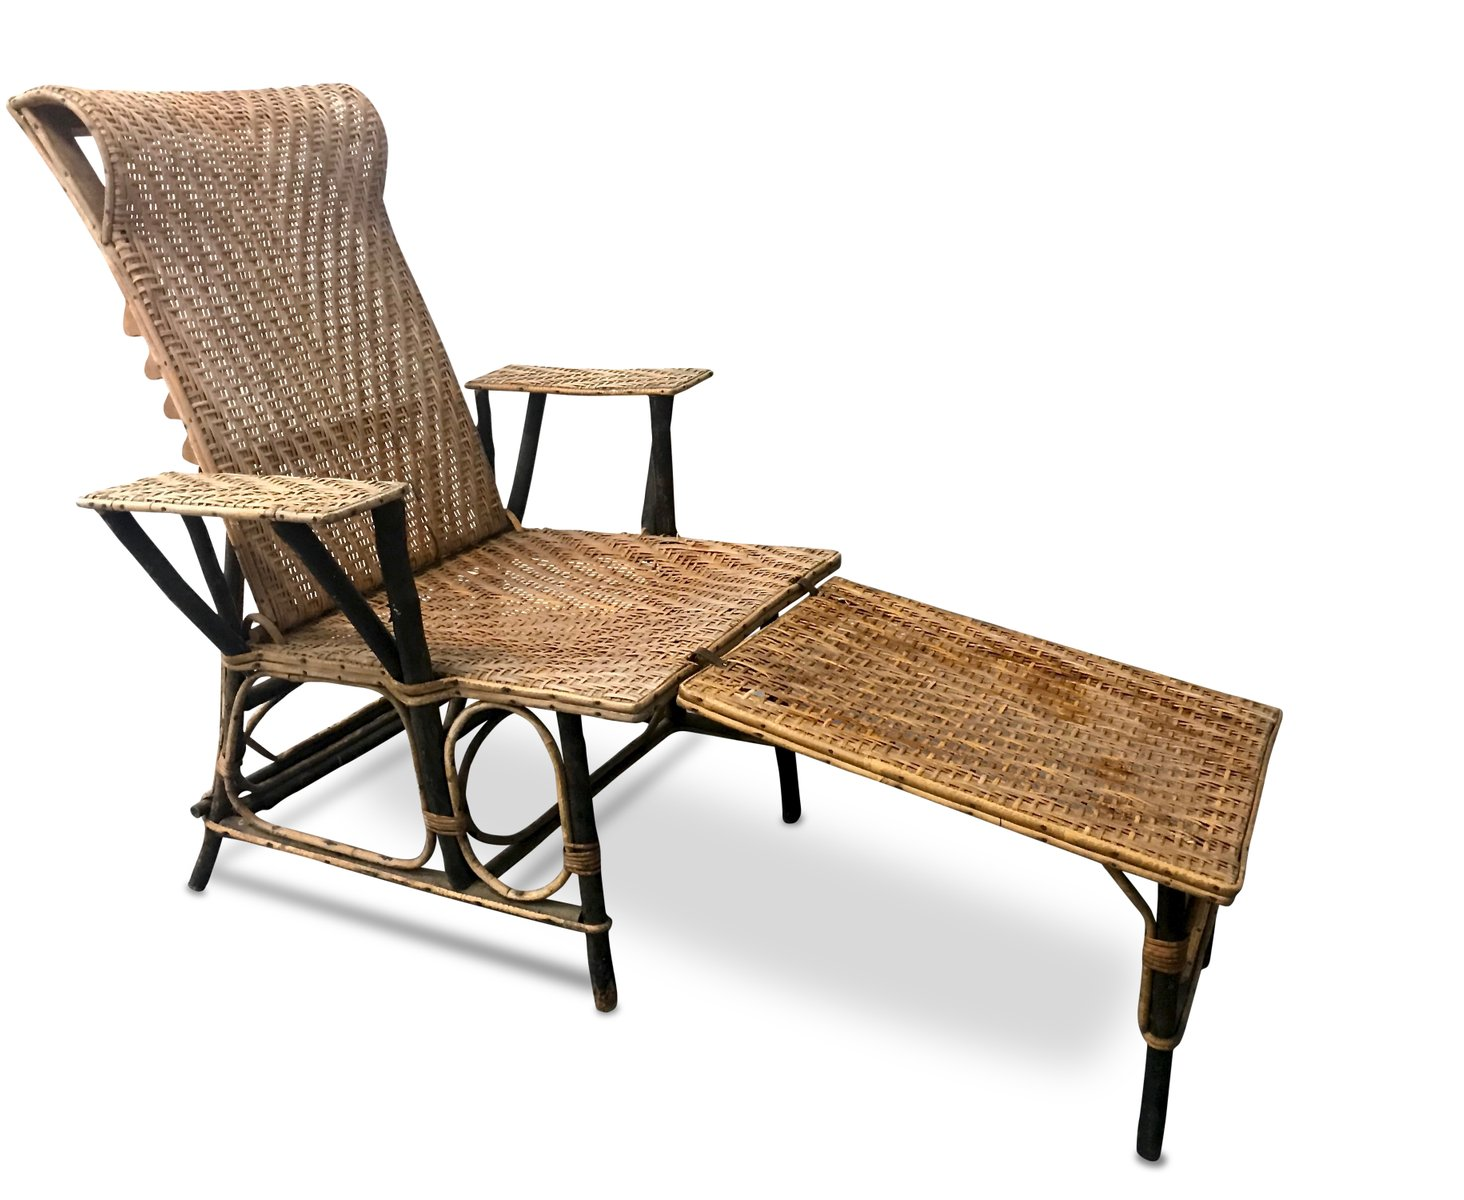 Best Daybeds Canada Vintage French Wicker & Bamboo Chaise Lounge For Sale At